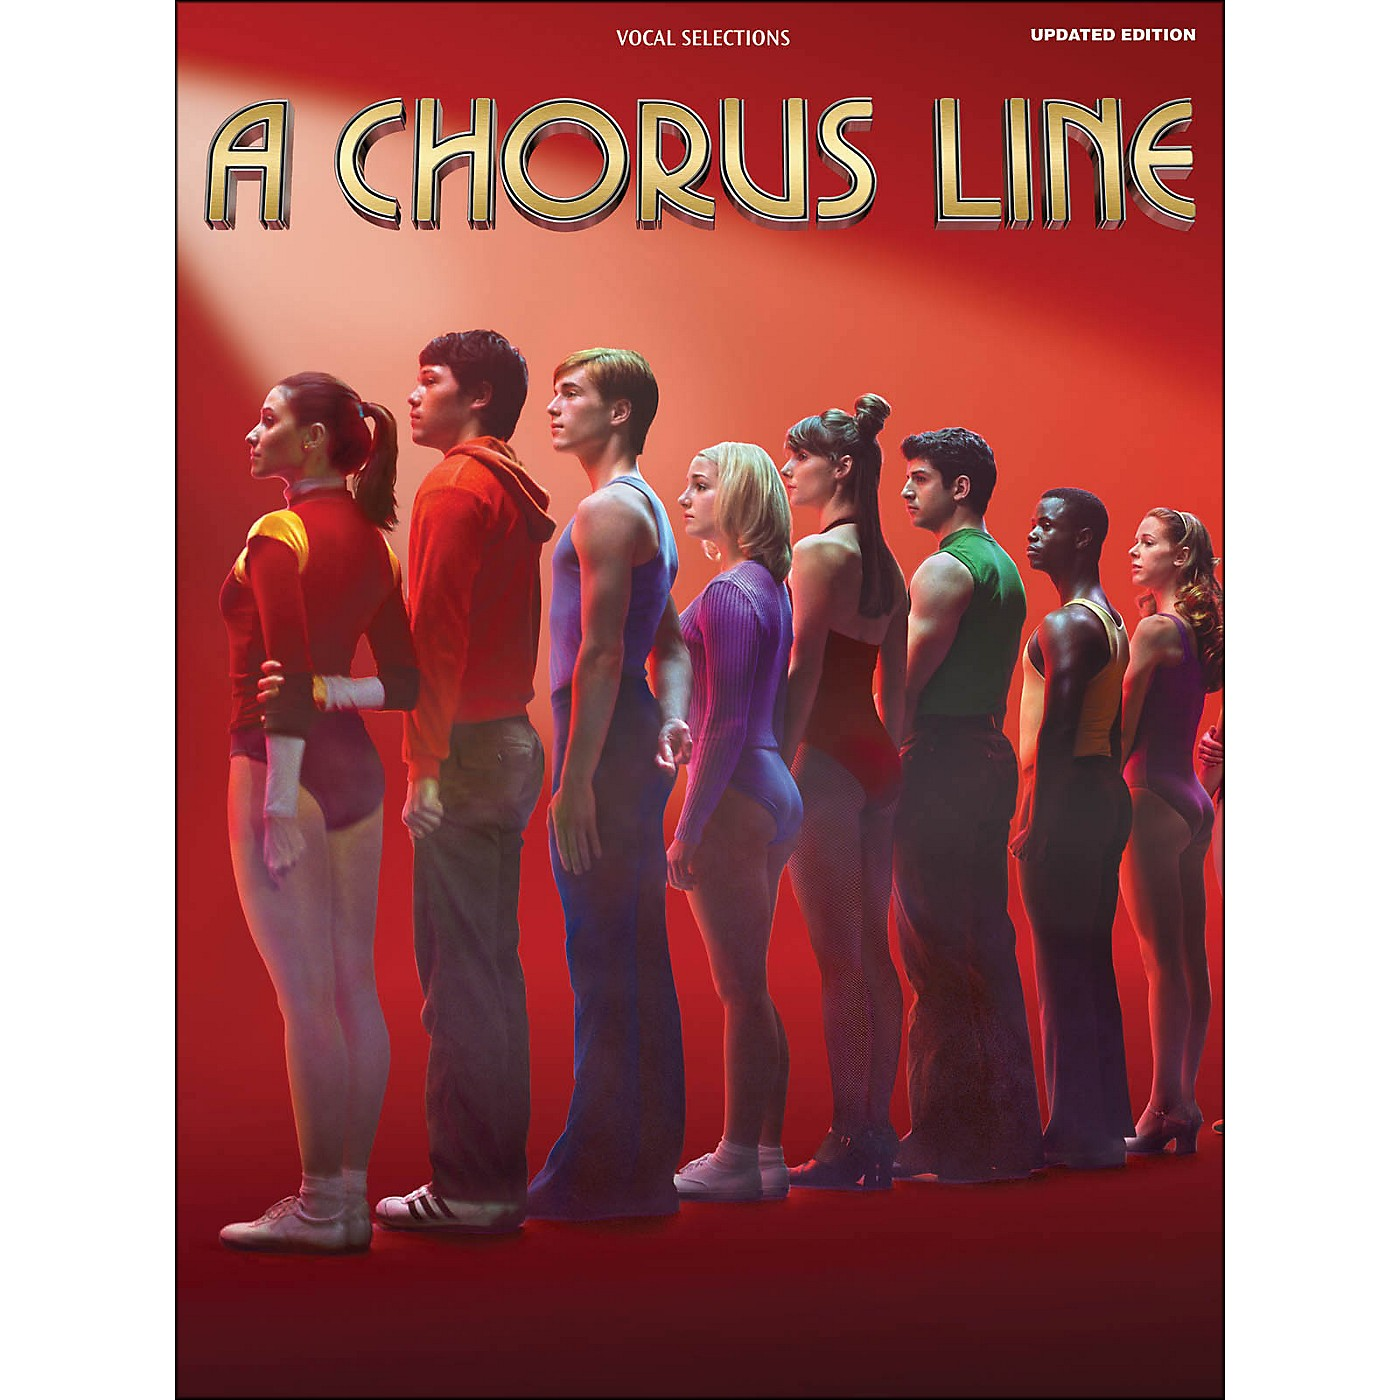 Hal Leonard A Chorus Line - Updated Edition arranged for piano, vocal, and guitar (P/V/G) thumbnail